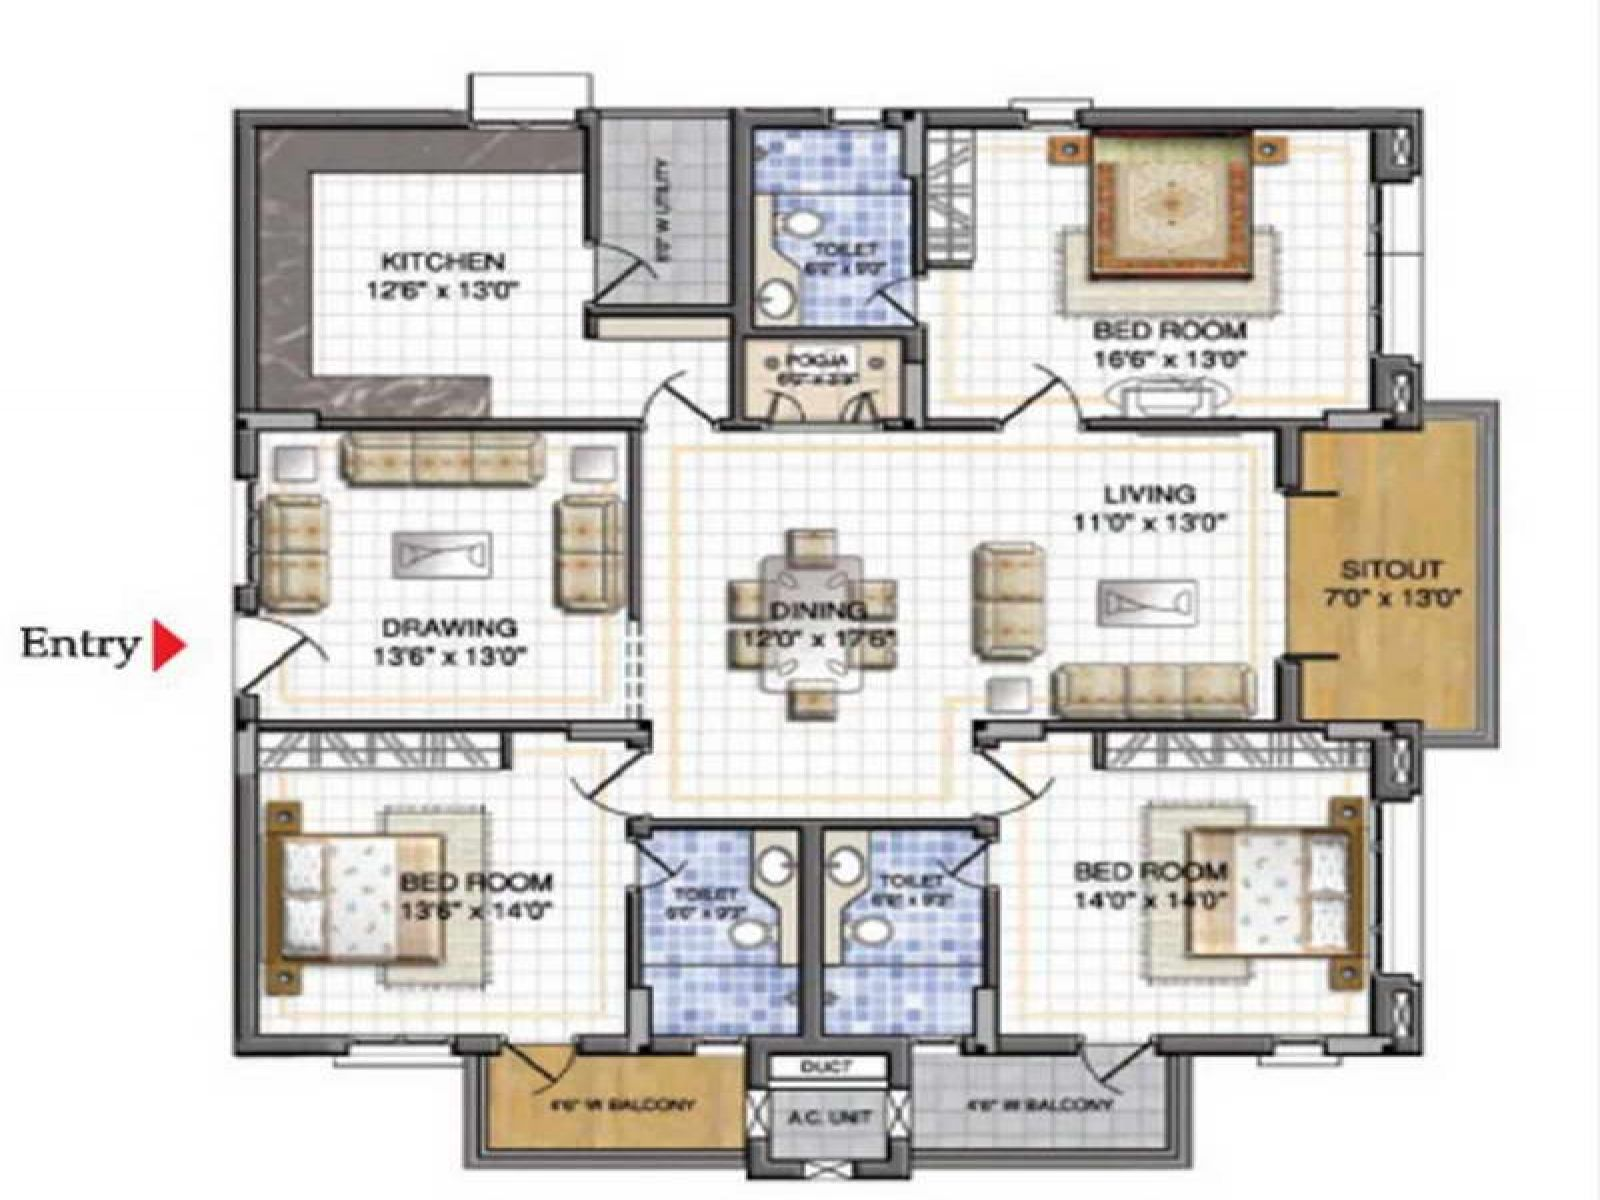 plan design windows floor free online terms copyright about ... on online house shopping, online modern house plans, online architectural plans,